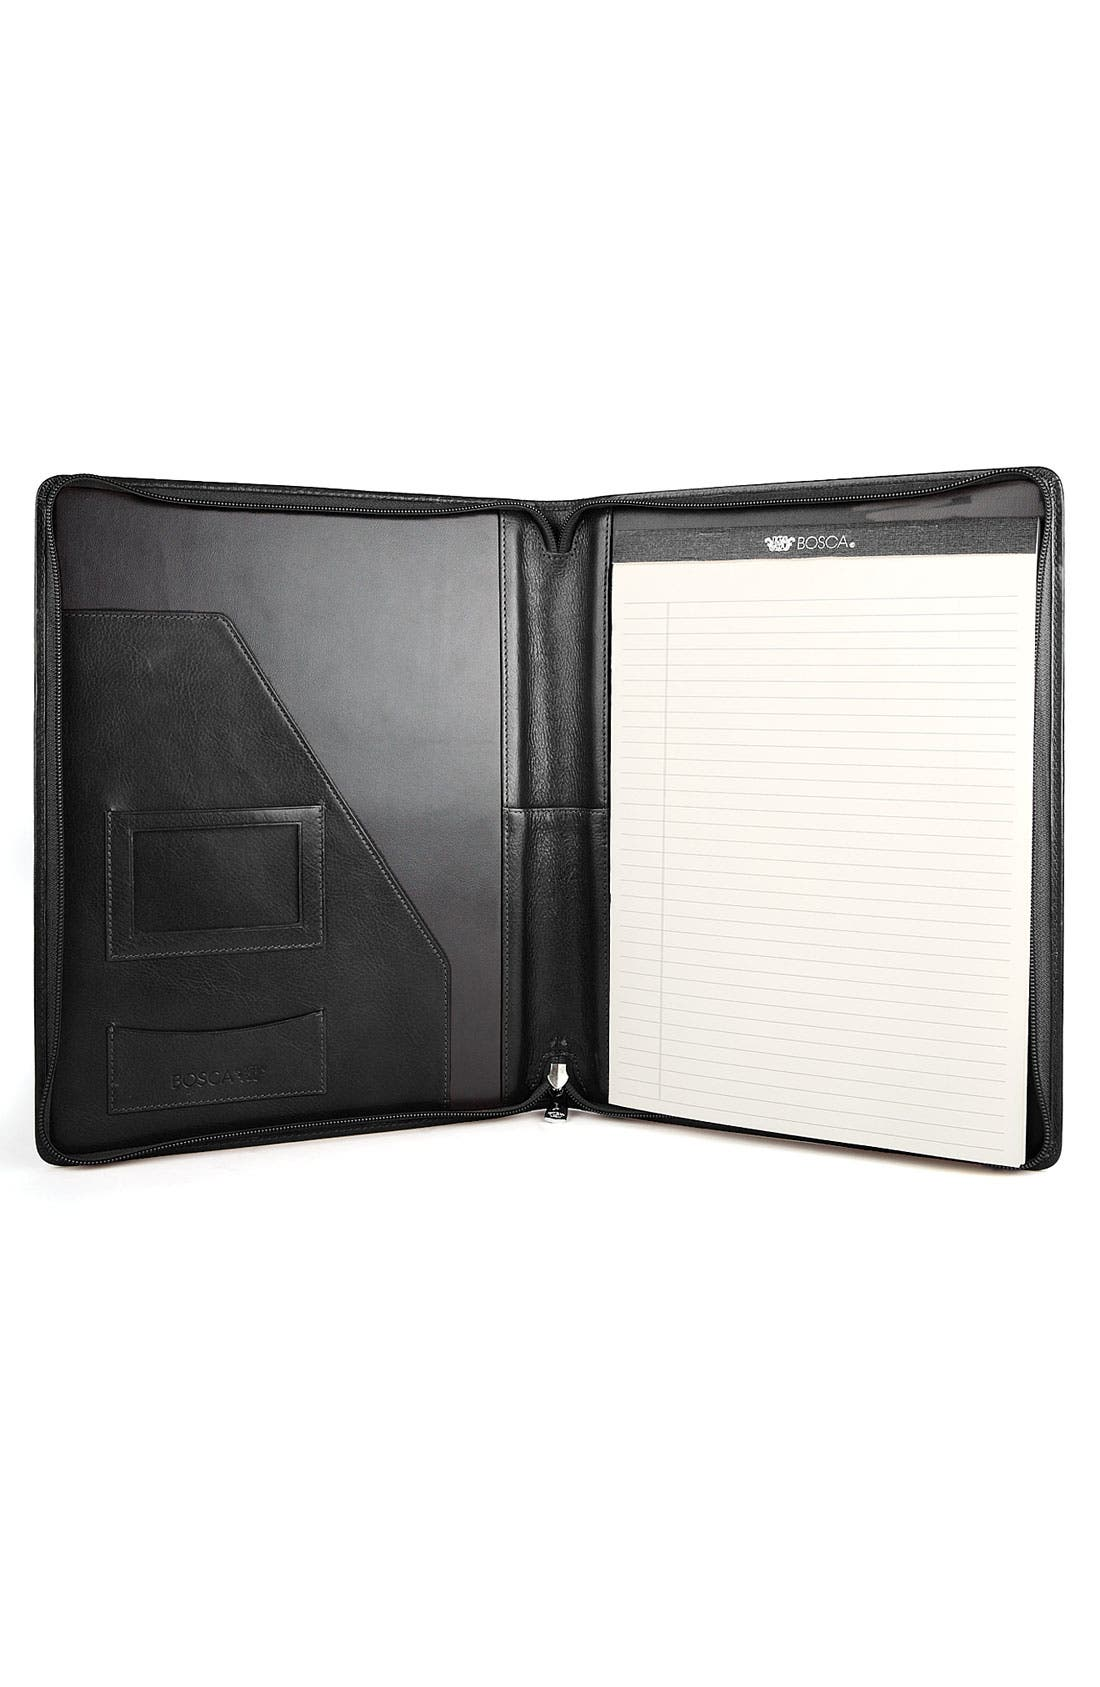 Alternate Image 1 Selected - Bosca Leather Zip Closure Letter Pad Cover